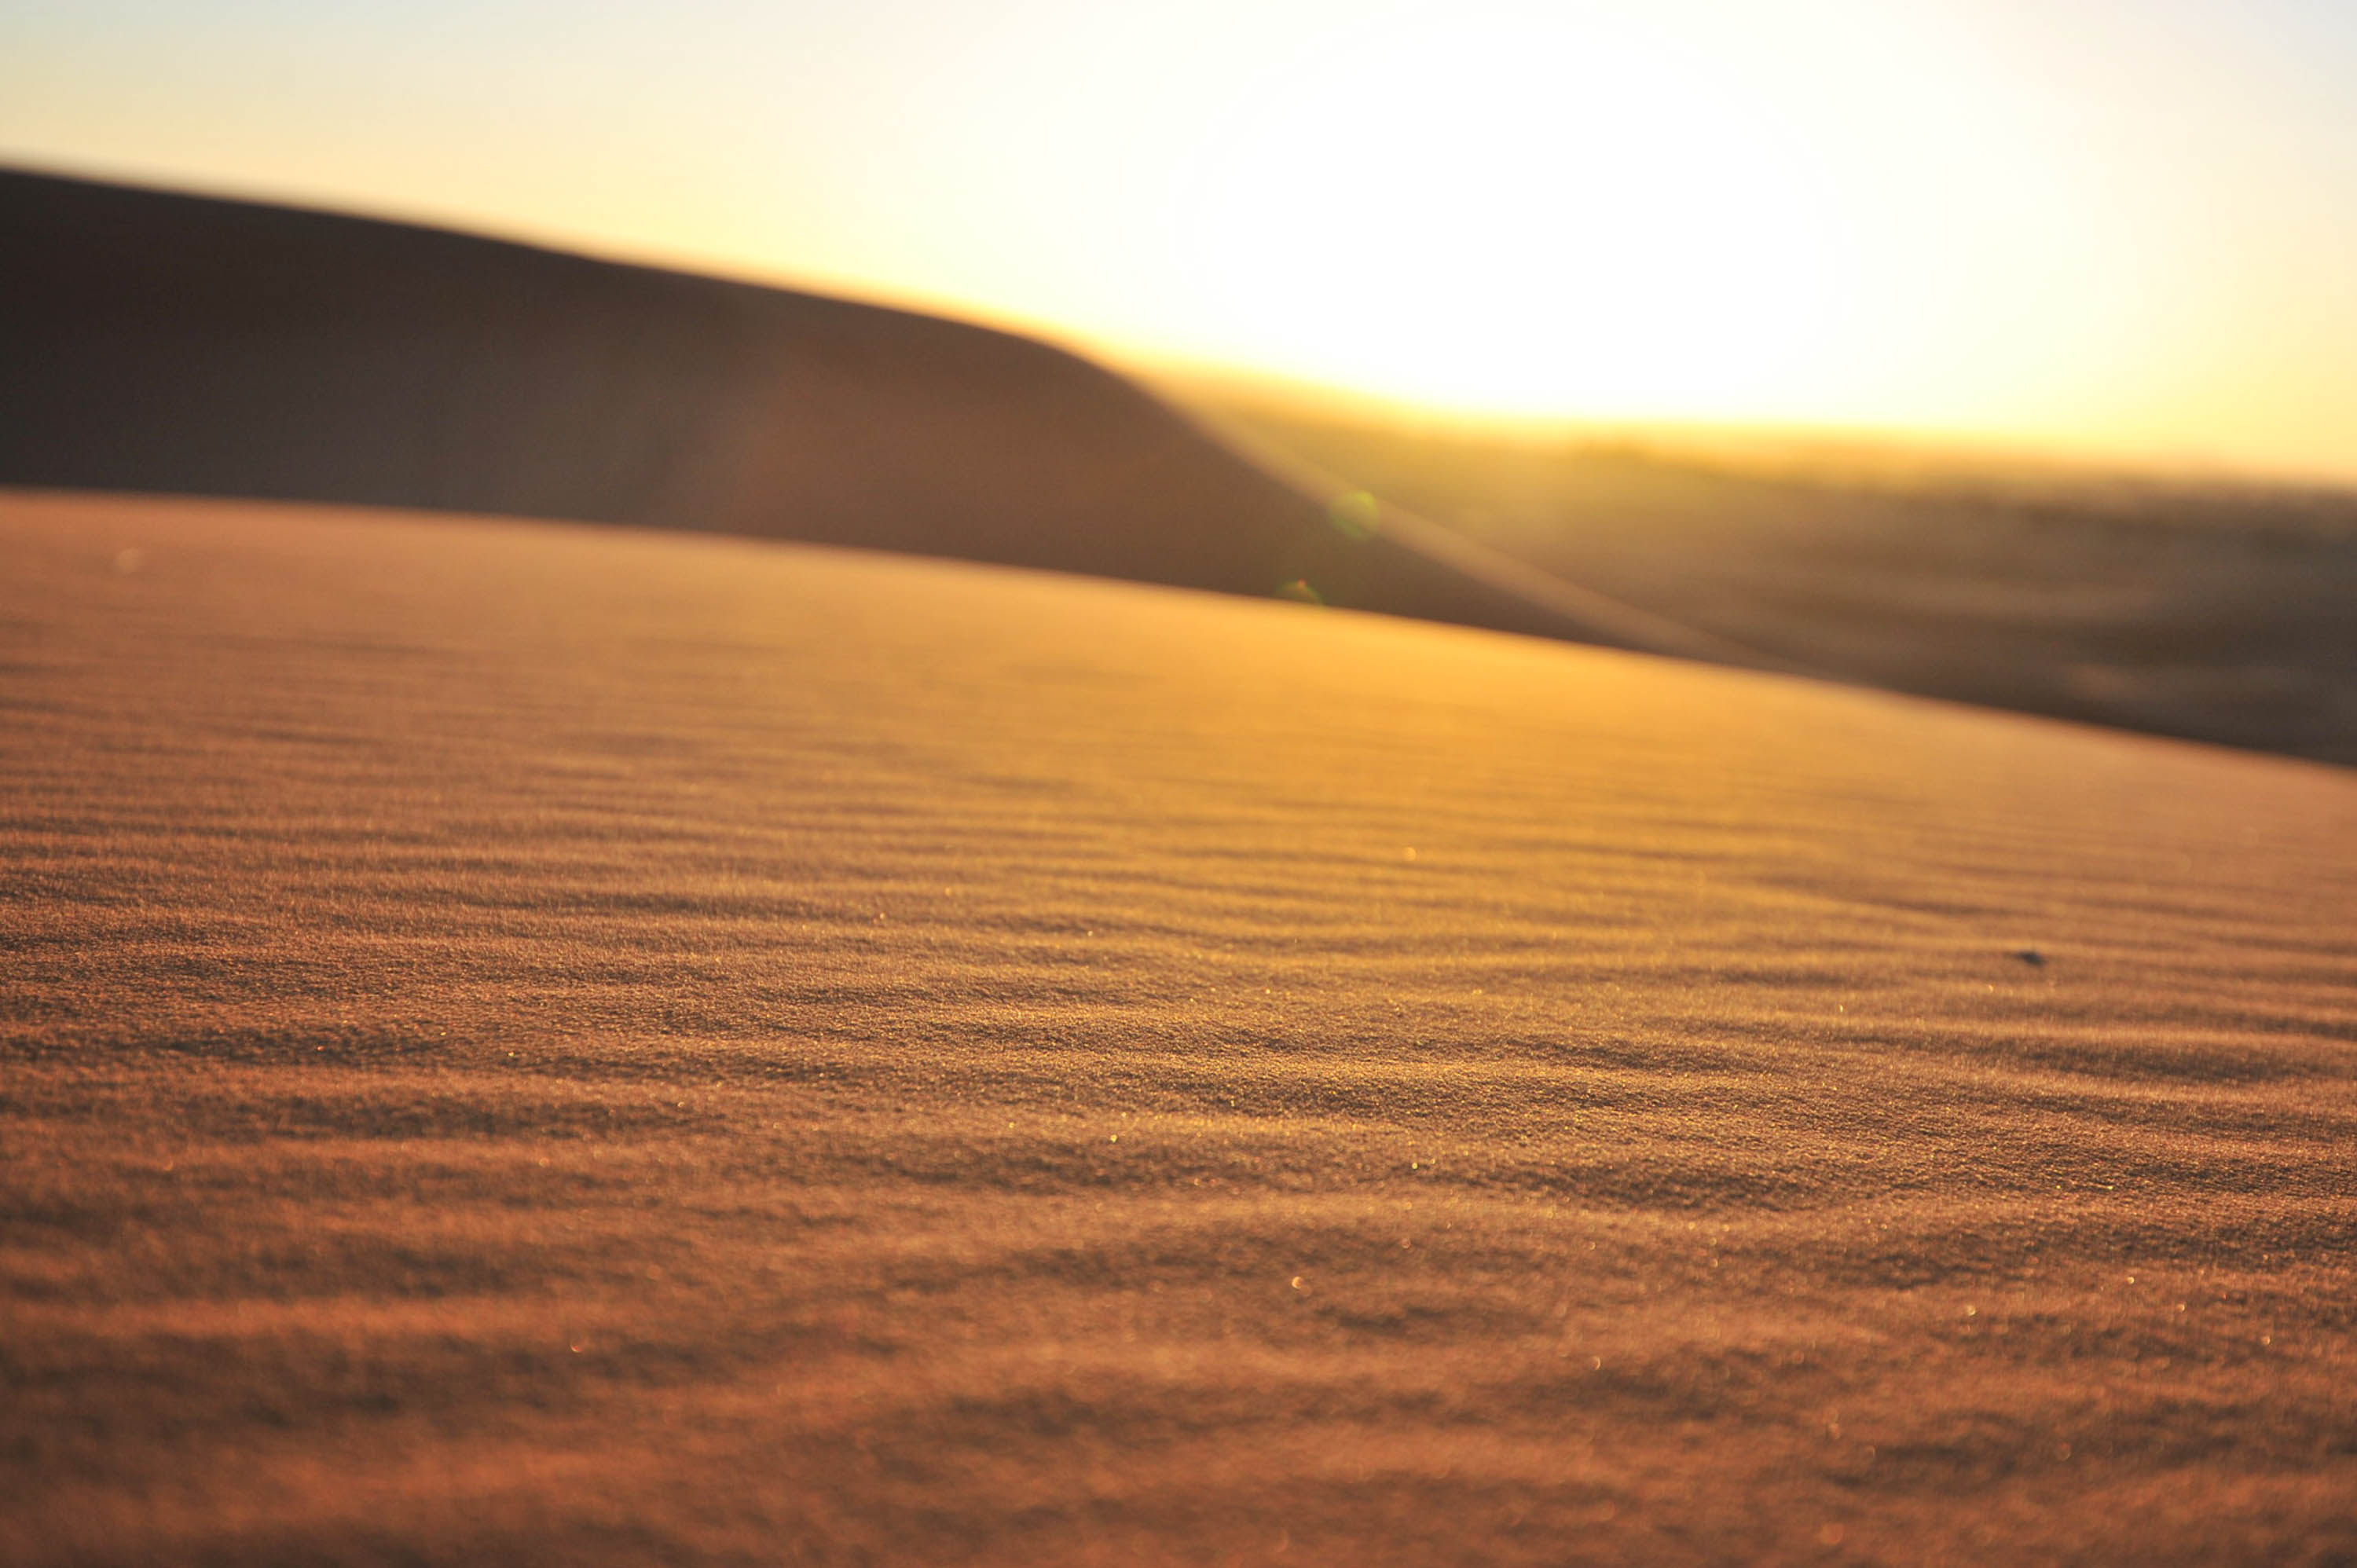 Into the Desert: Sahara Dunes and Surrounding Scenes